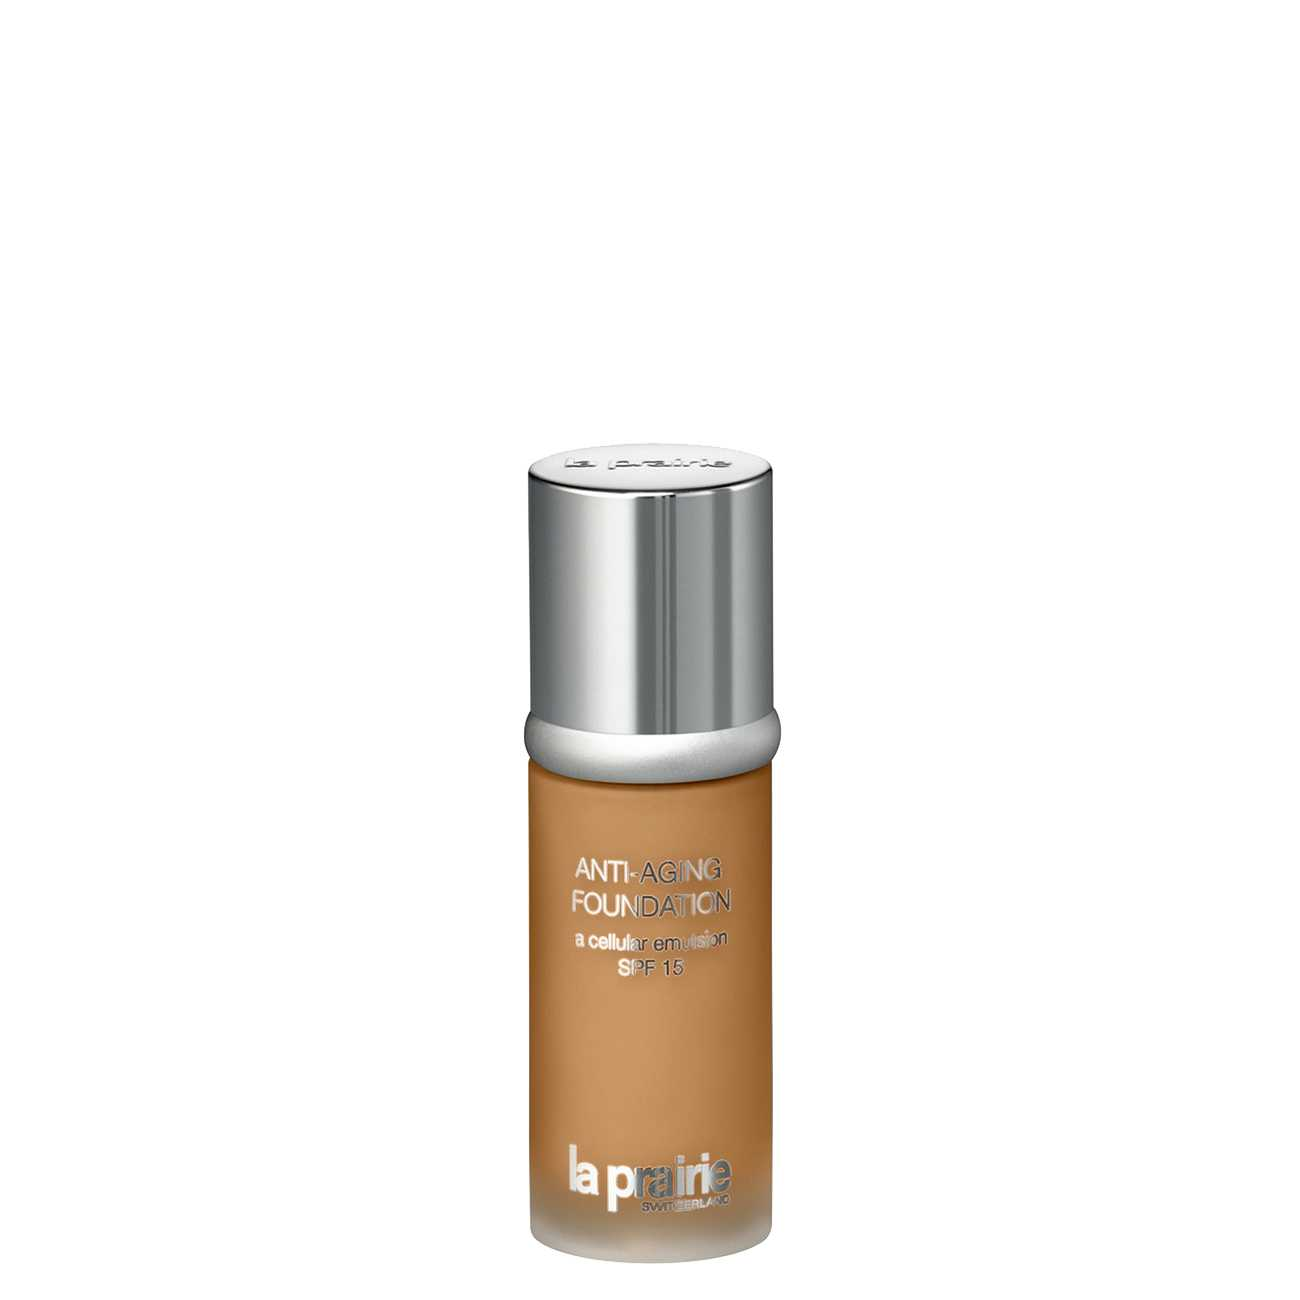 ANTI-AGING FOUNDATION 30 ML Shade 800